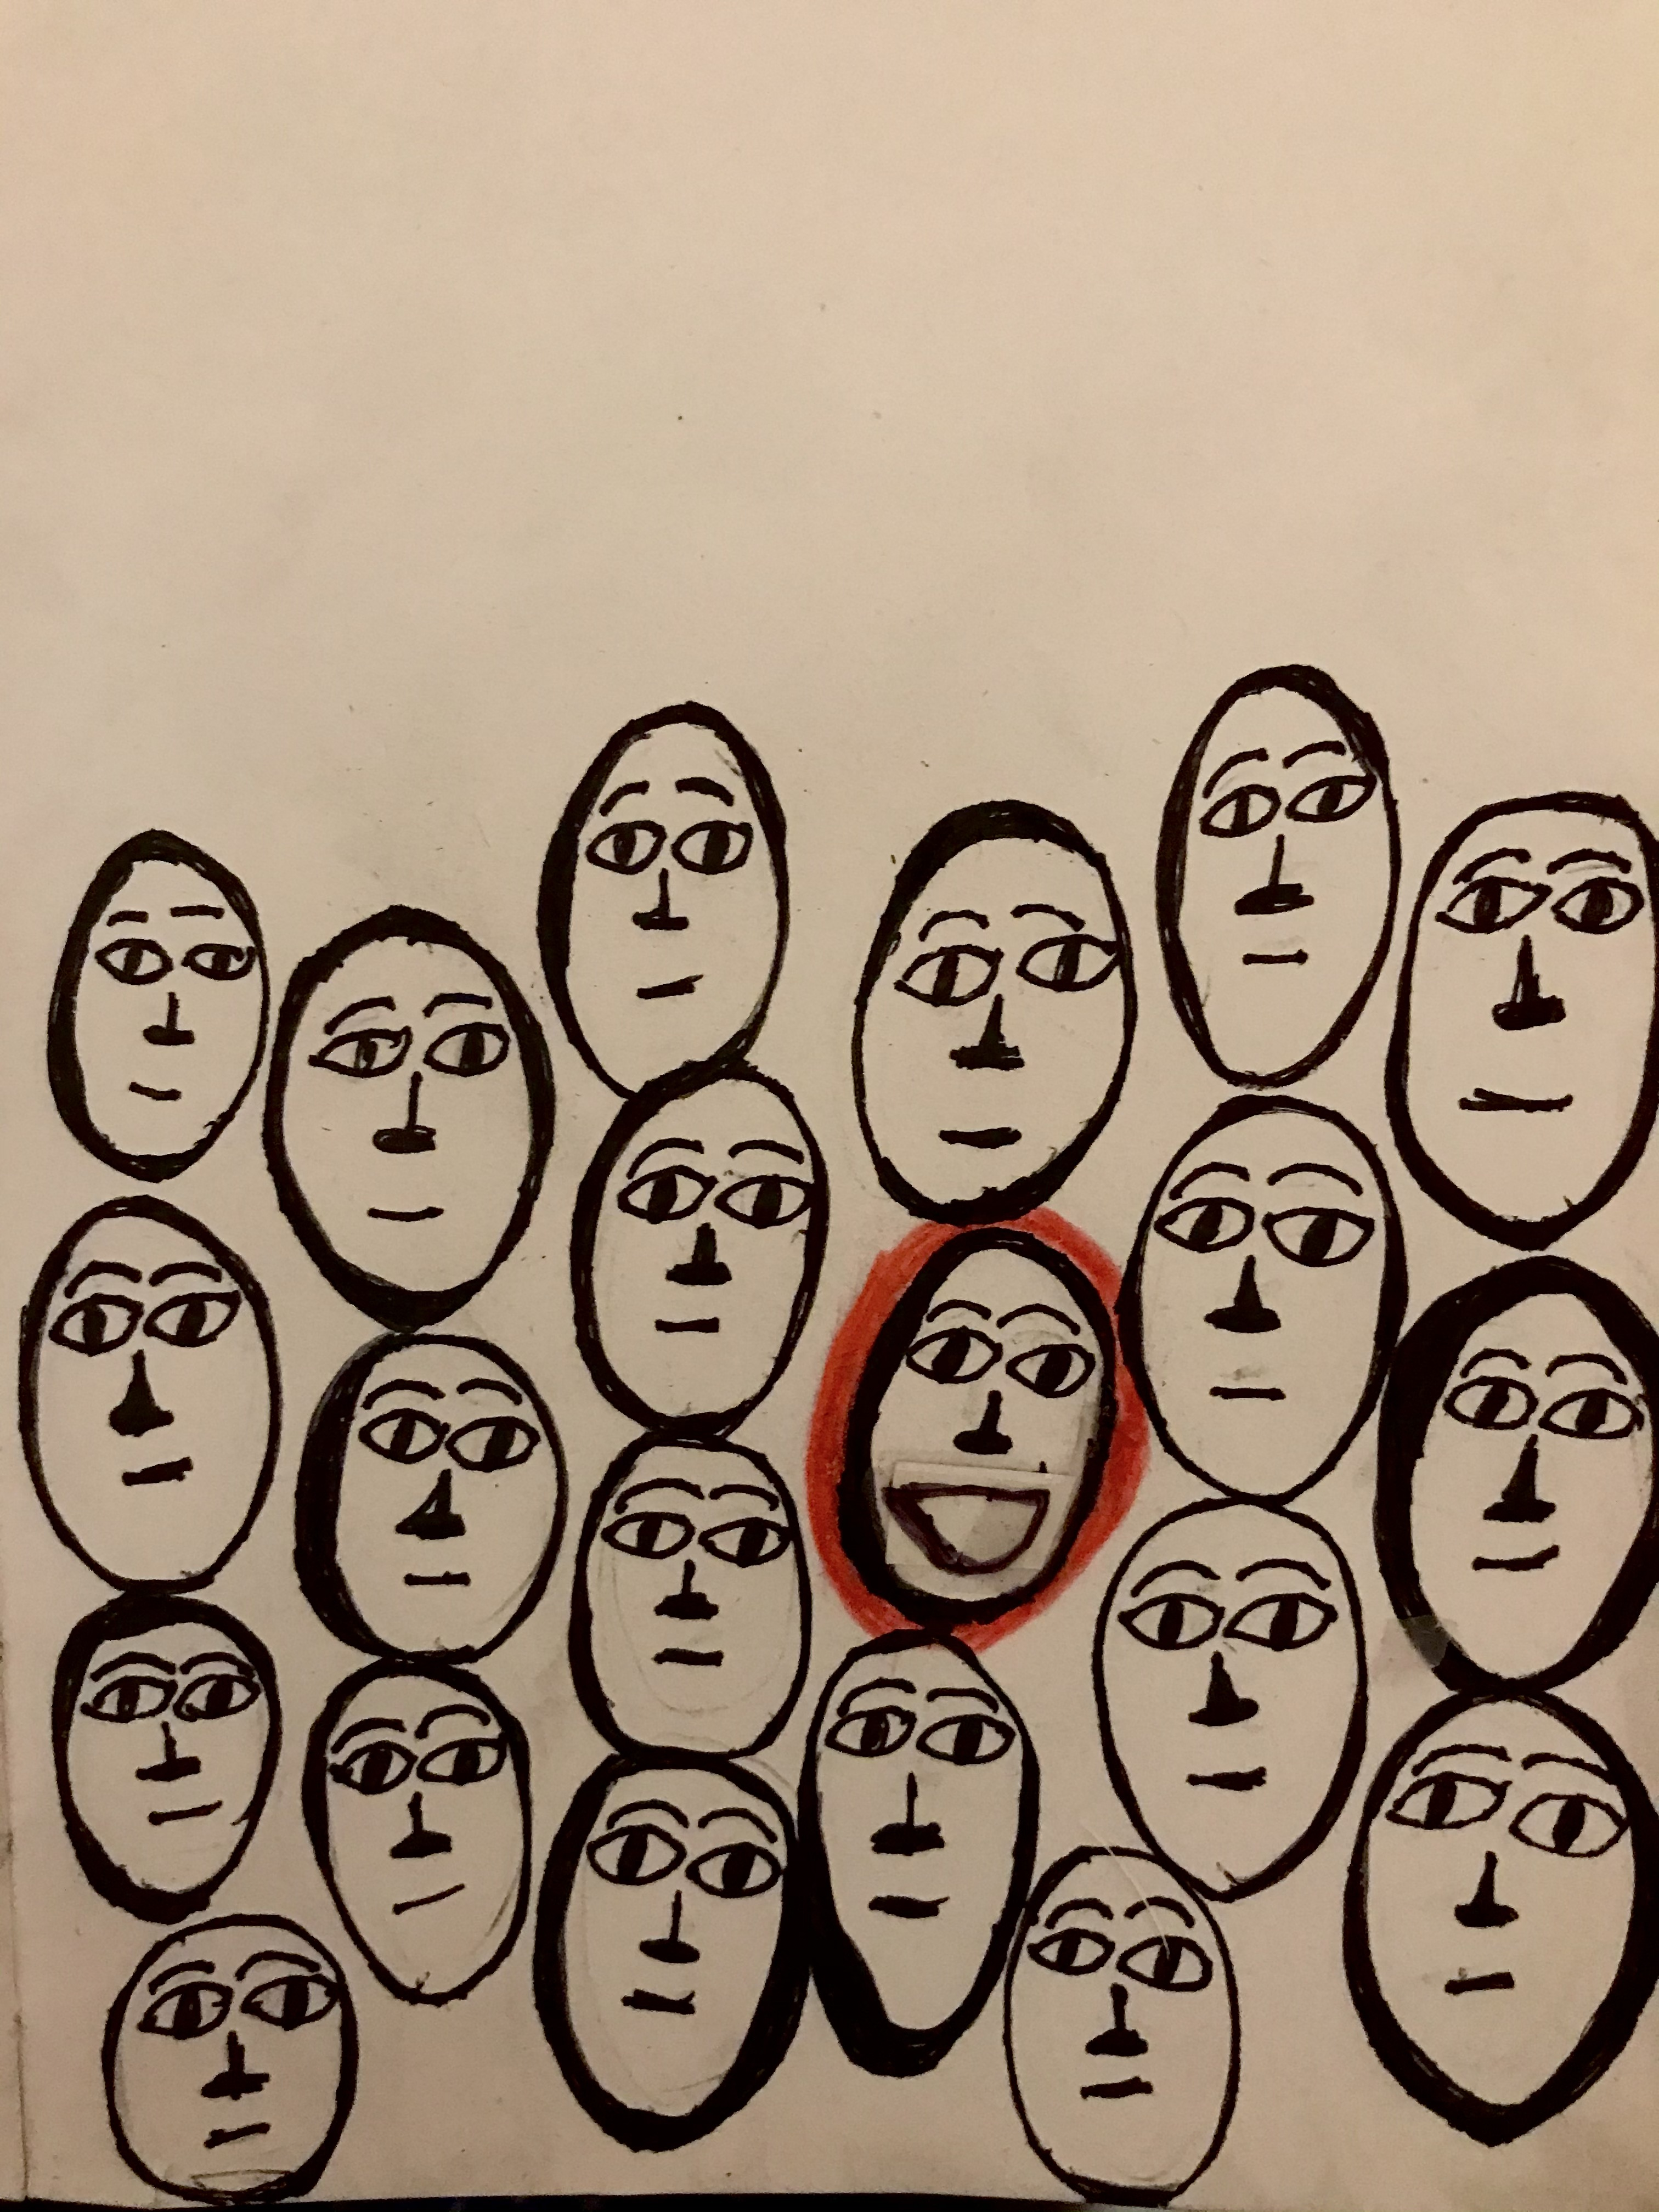 Drawings of faces in black outlines, with one outlined in red in the middle. Art by the author.